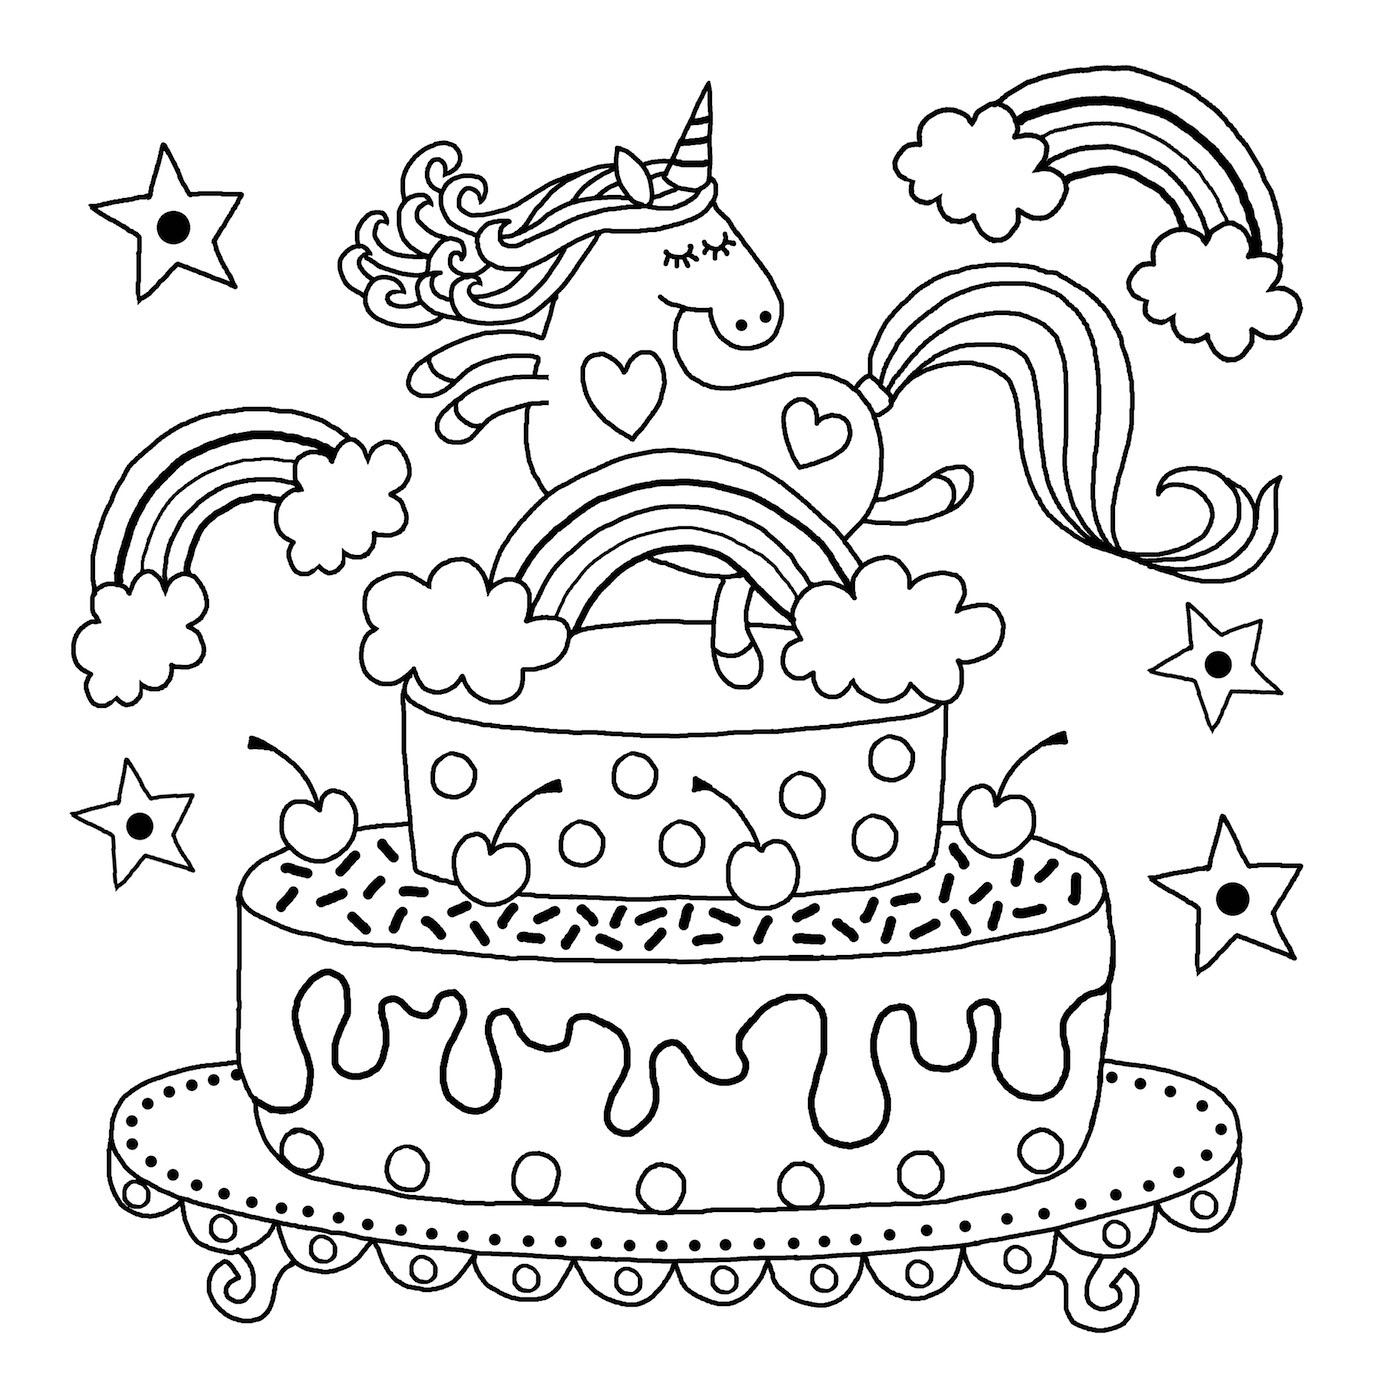 unicorn to color unicorn coloring pages free download on clipartmag color unicorn to